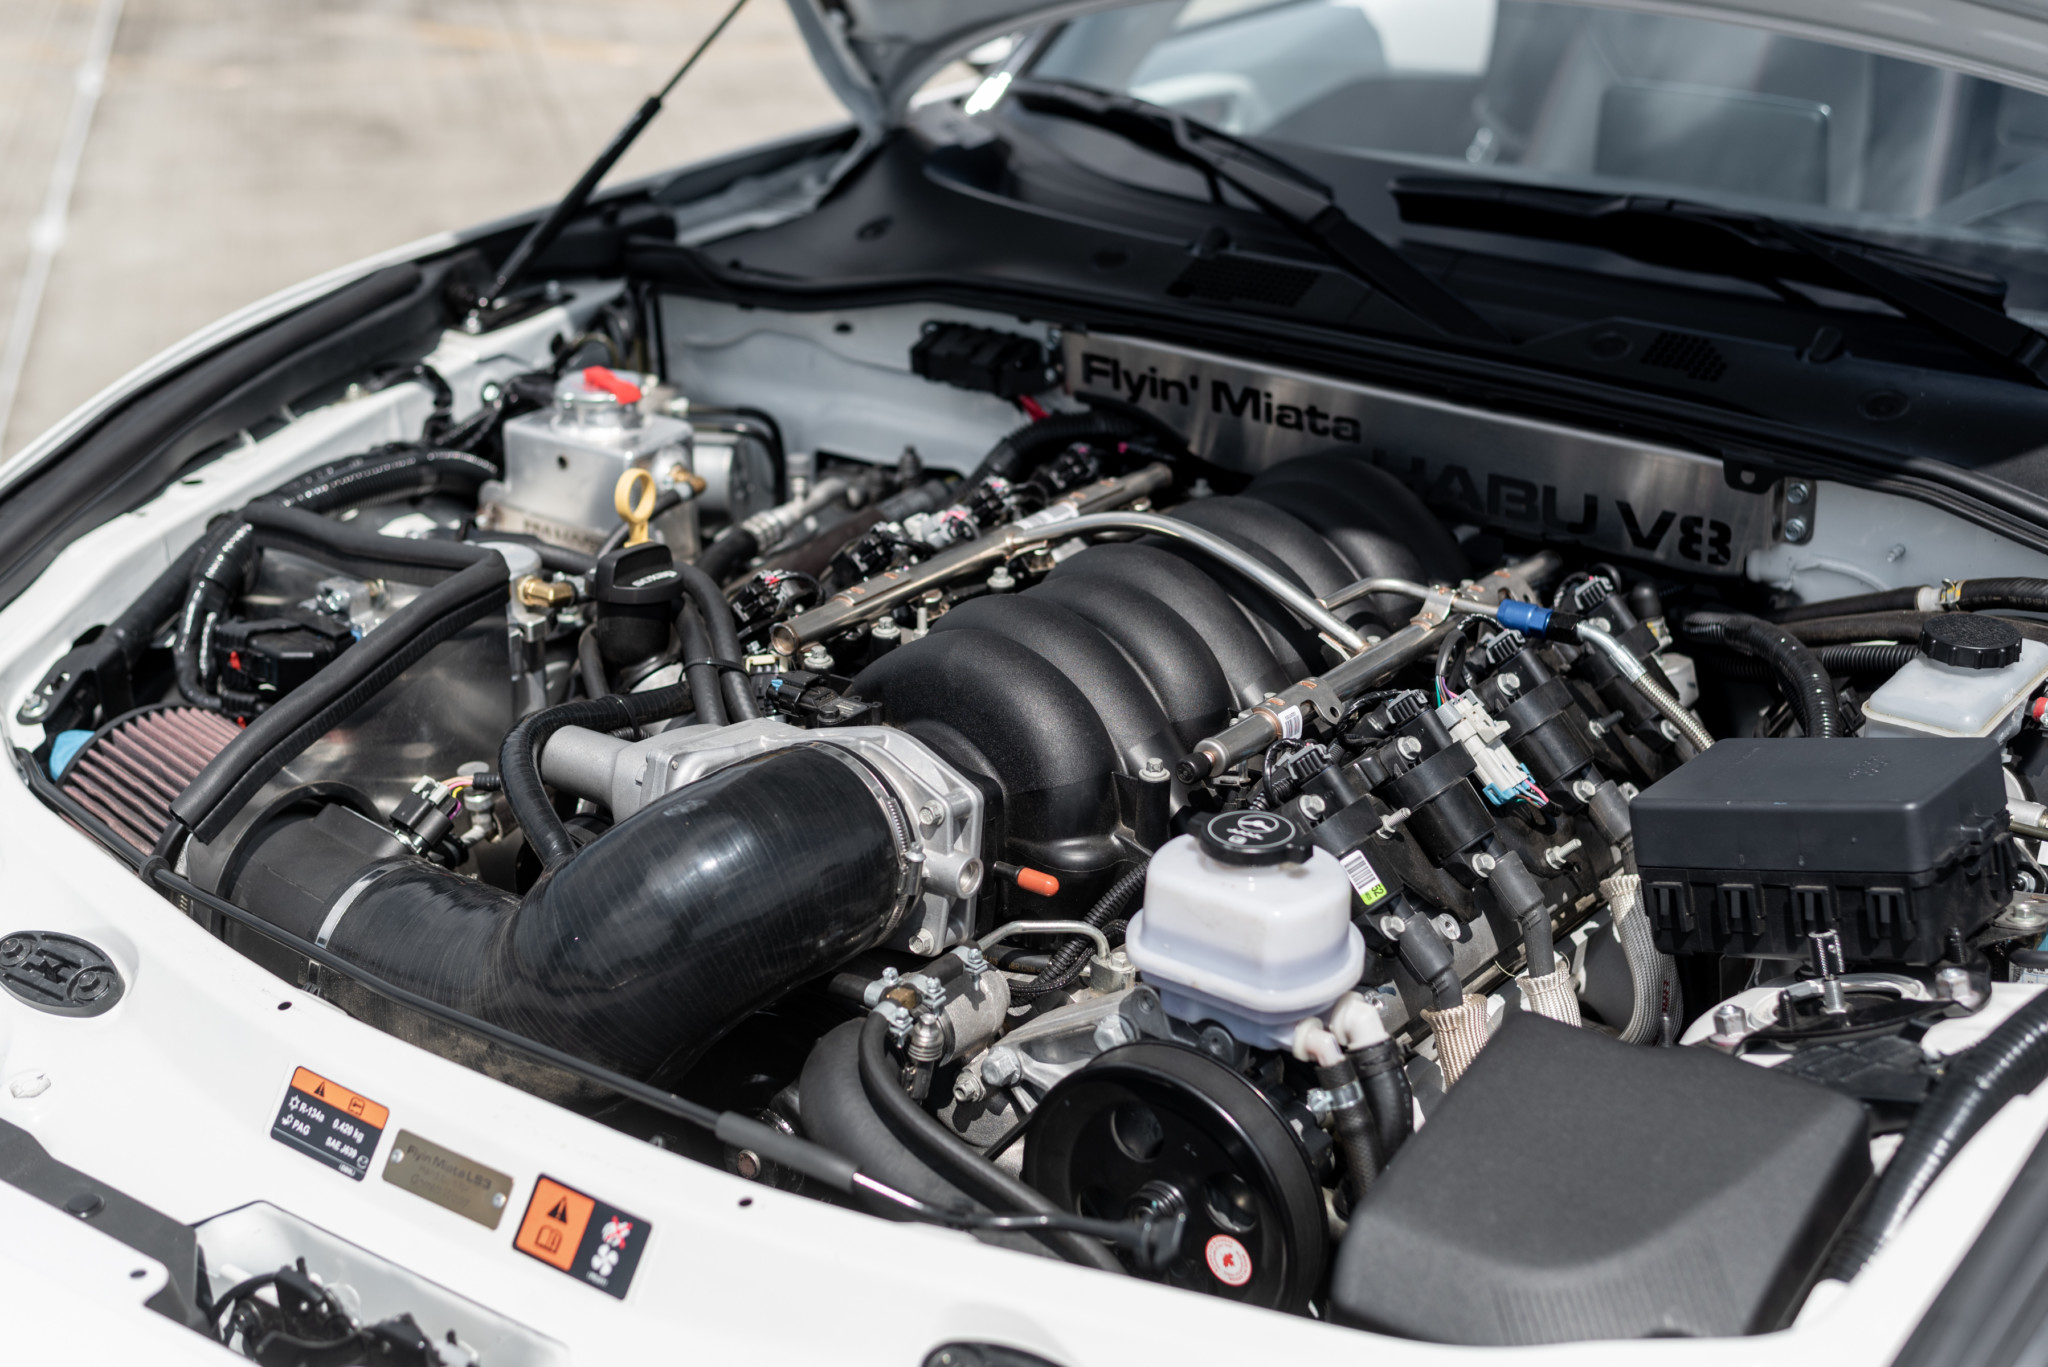 For Sale: 2016 Miata with a LS3 V8 – Engine Swap Depot